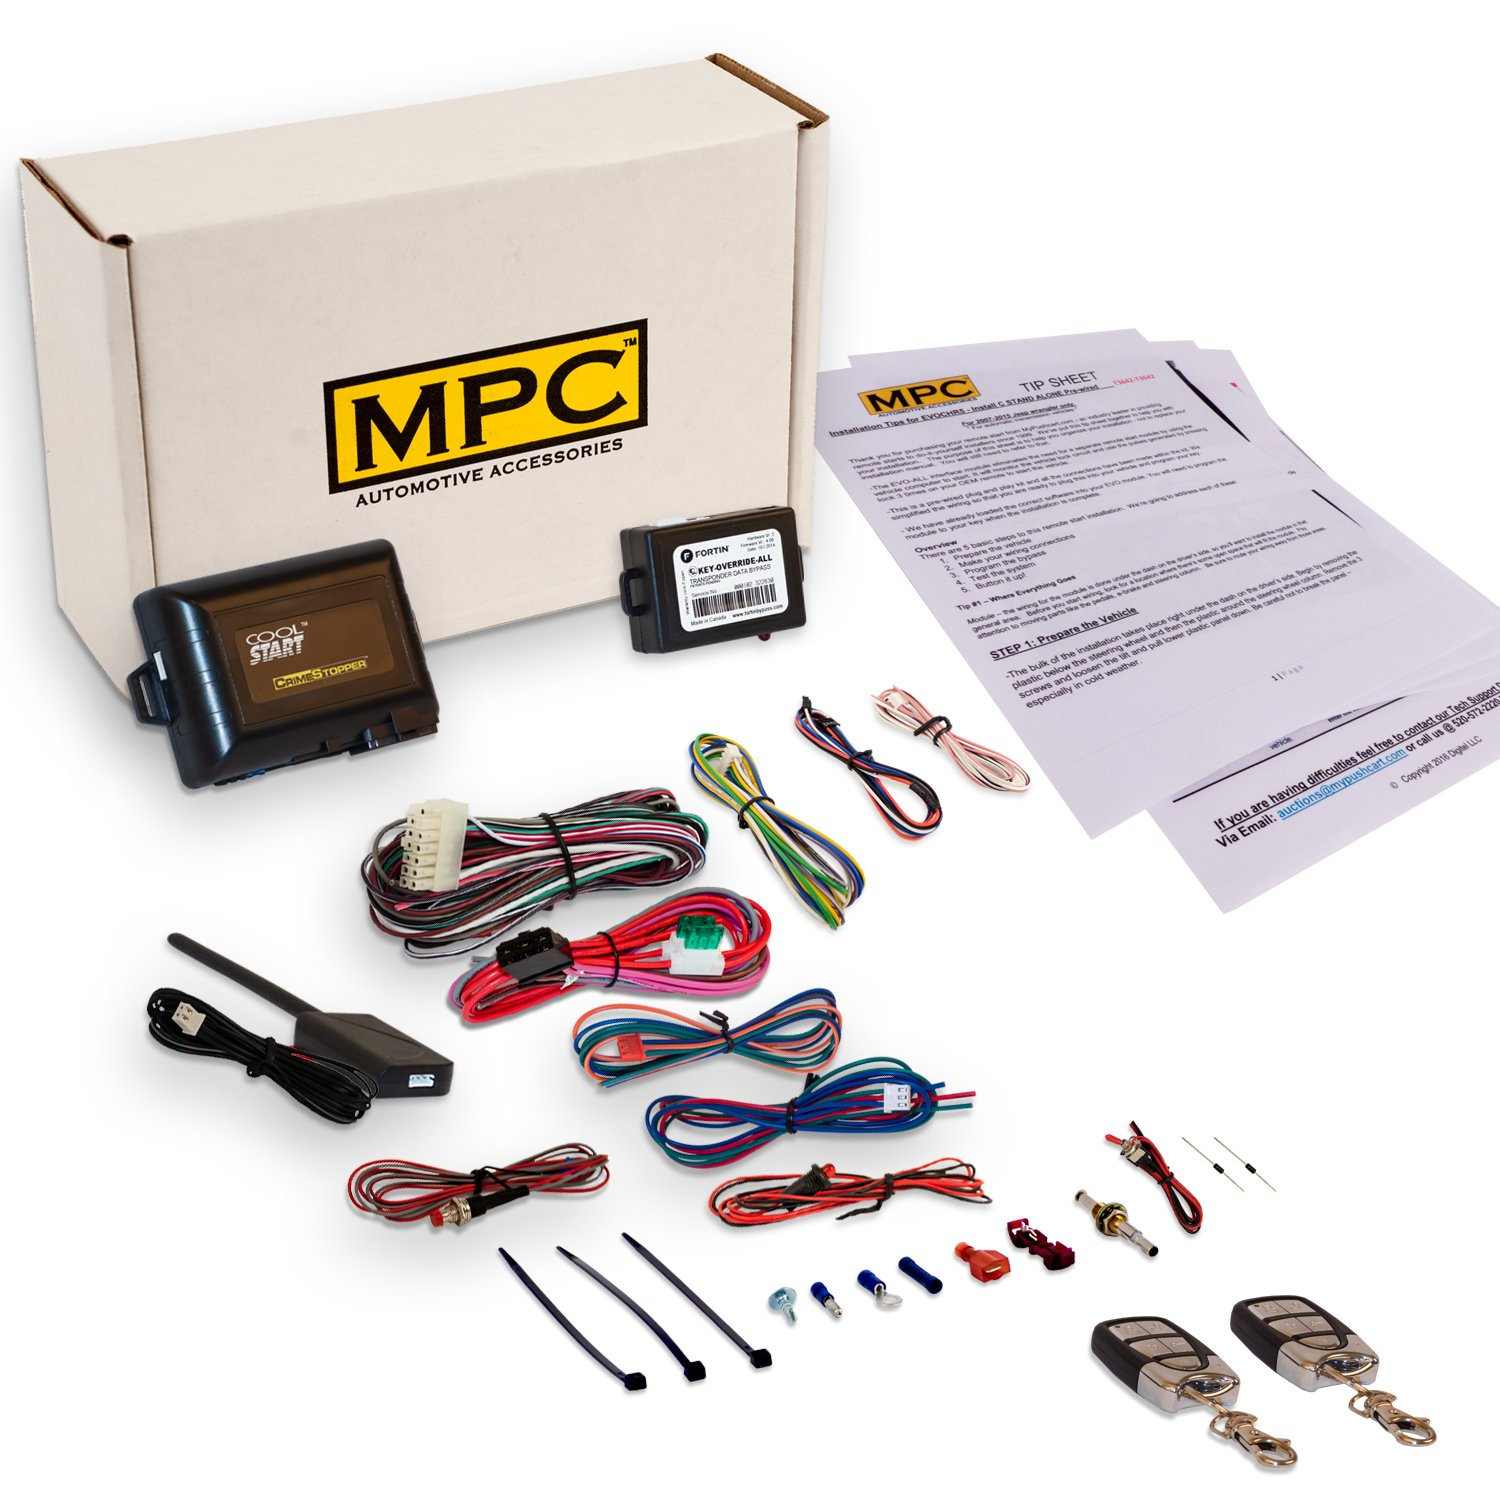 Amazon.com: MPC Complete Remote Start & Keyless Entry Kit Fits ...